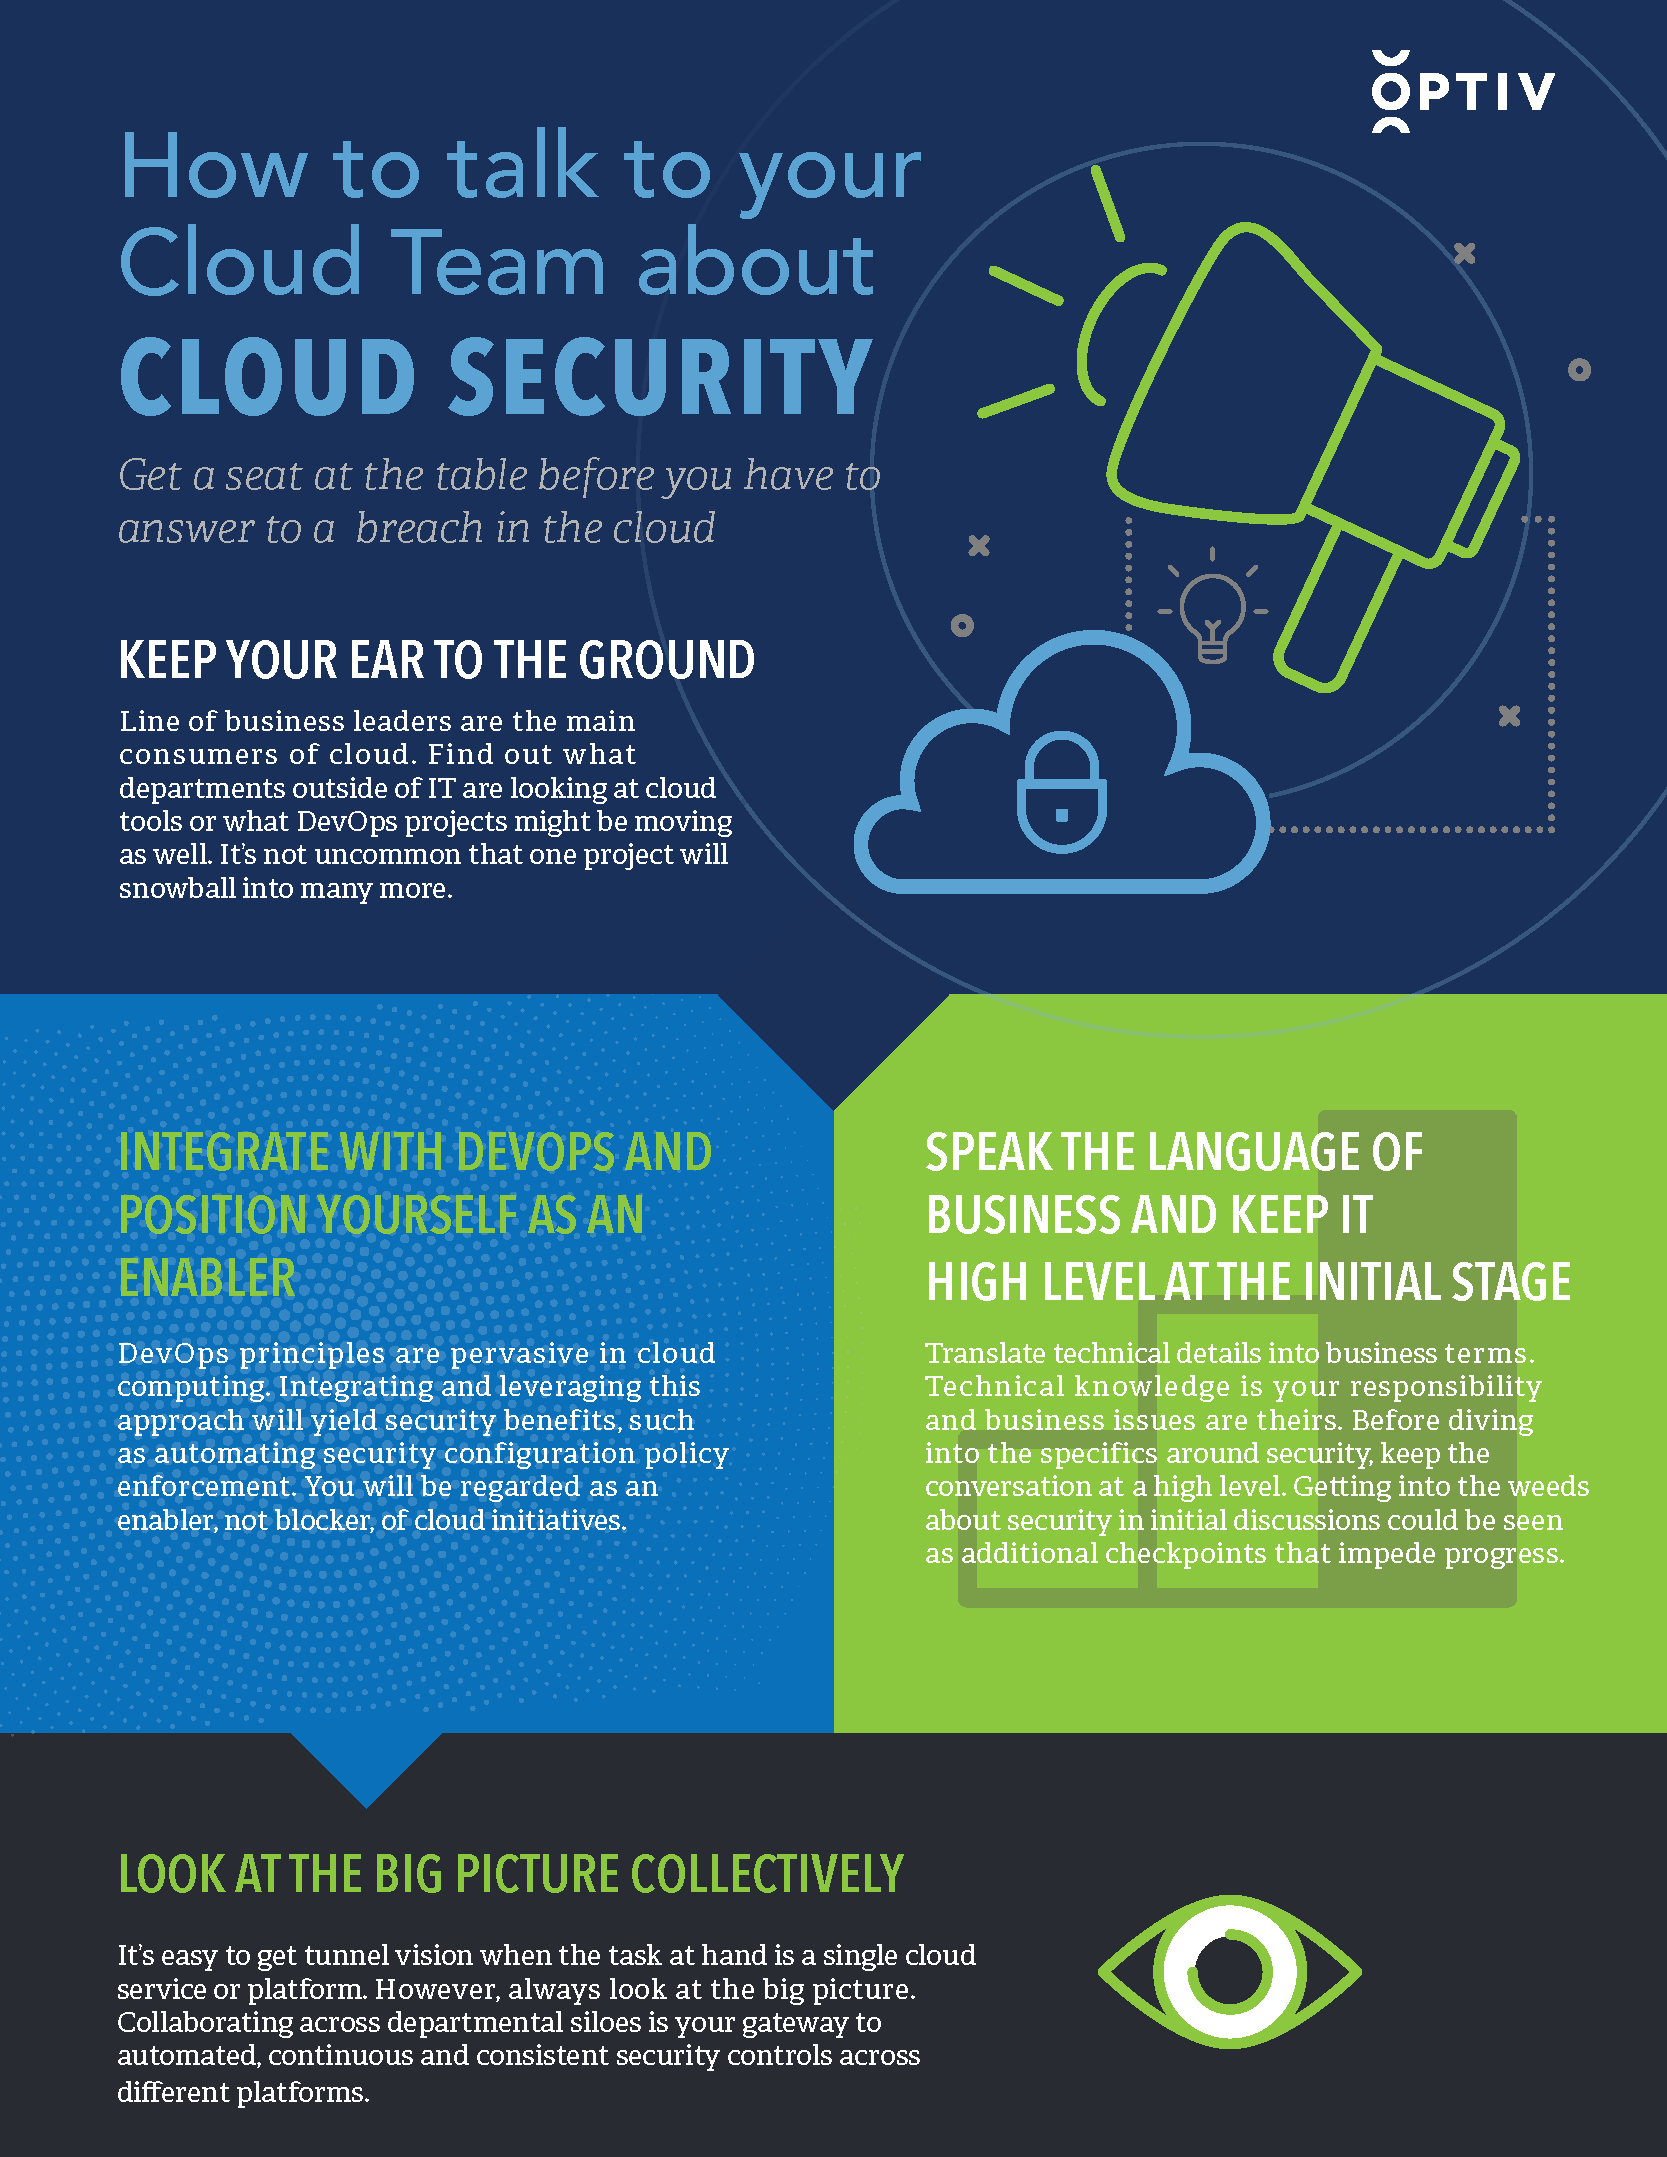 How to Talk to Your Cloud Team About Cloud Security